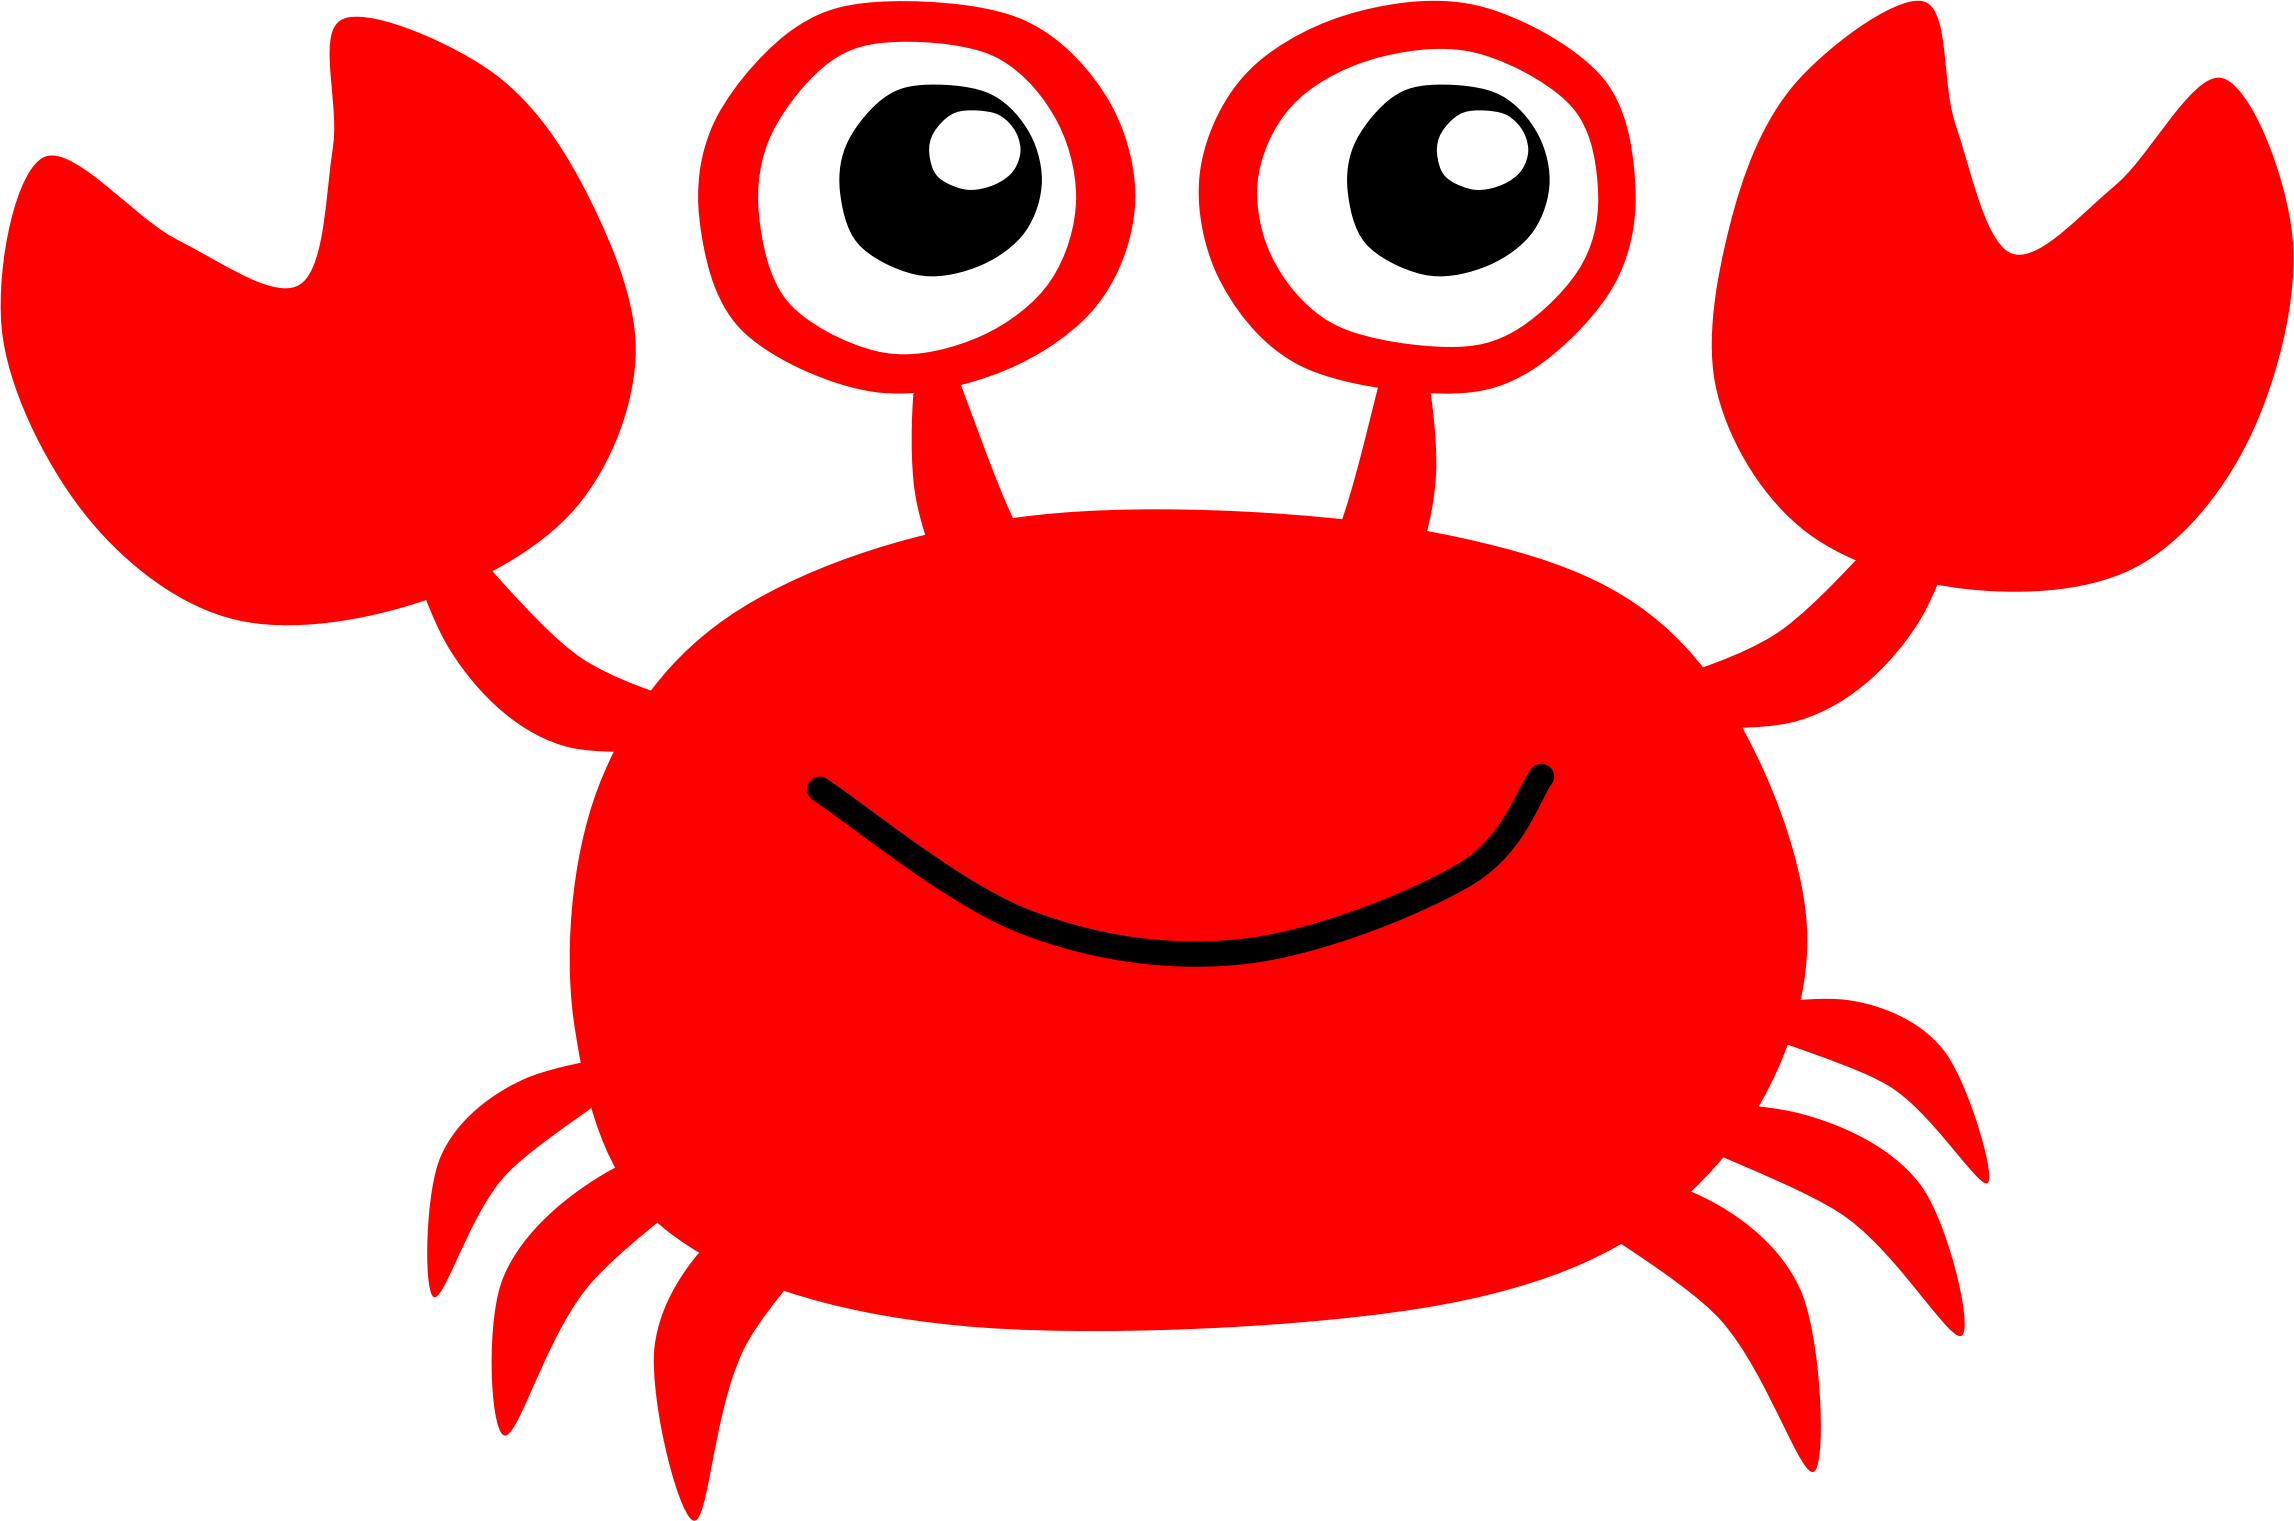 Transparent crab svg. Red icons png free